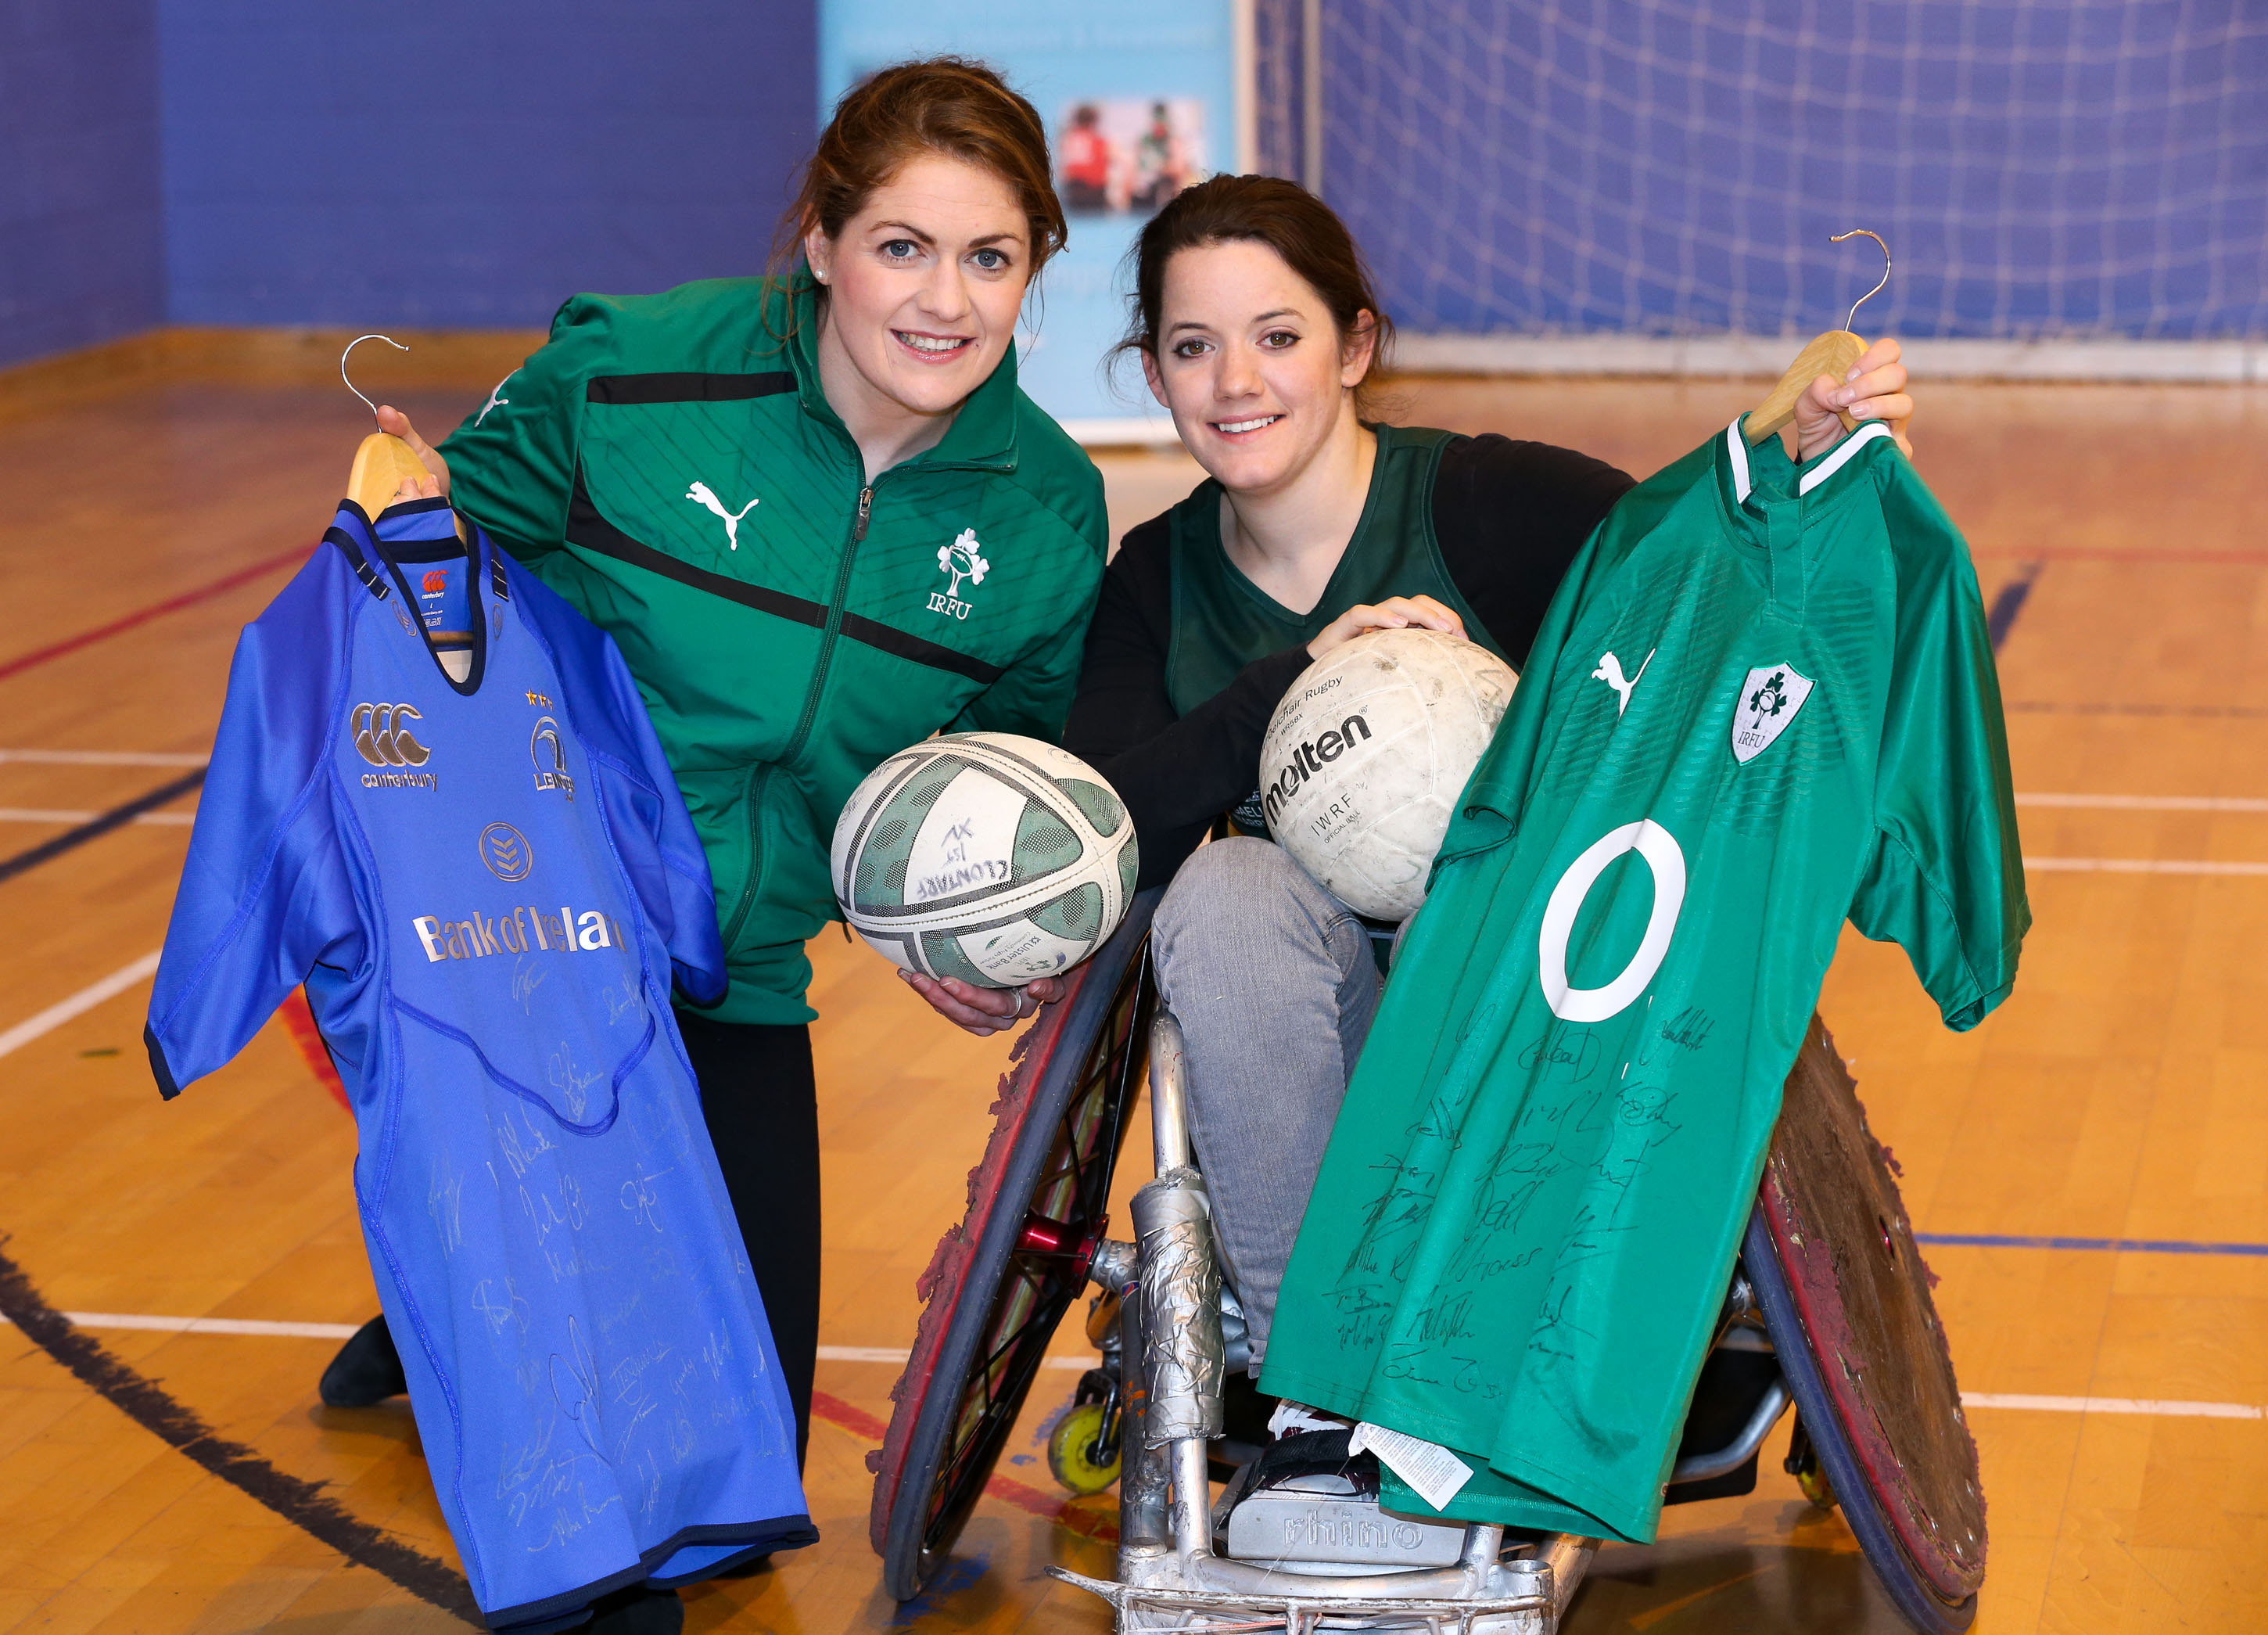 Irish Rugby Captain Answers Irish Wheelchair Associations Call for Support